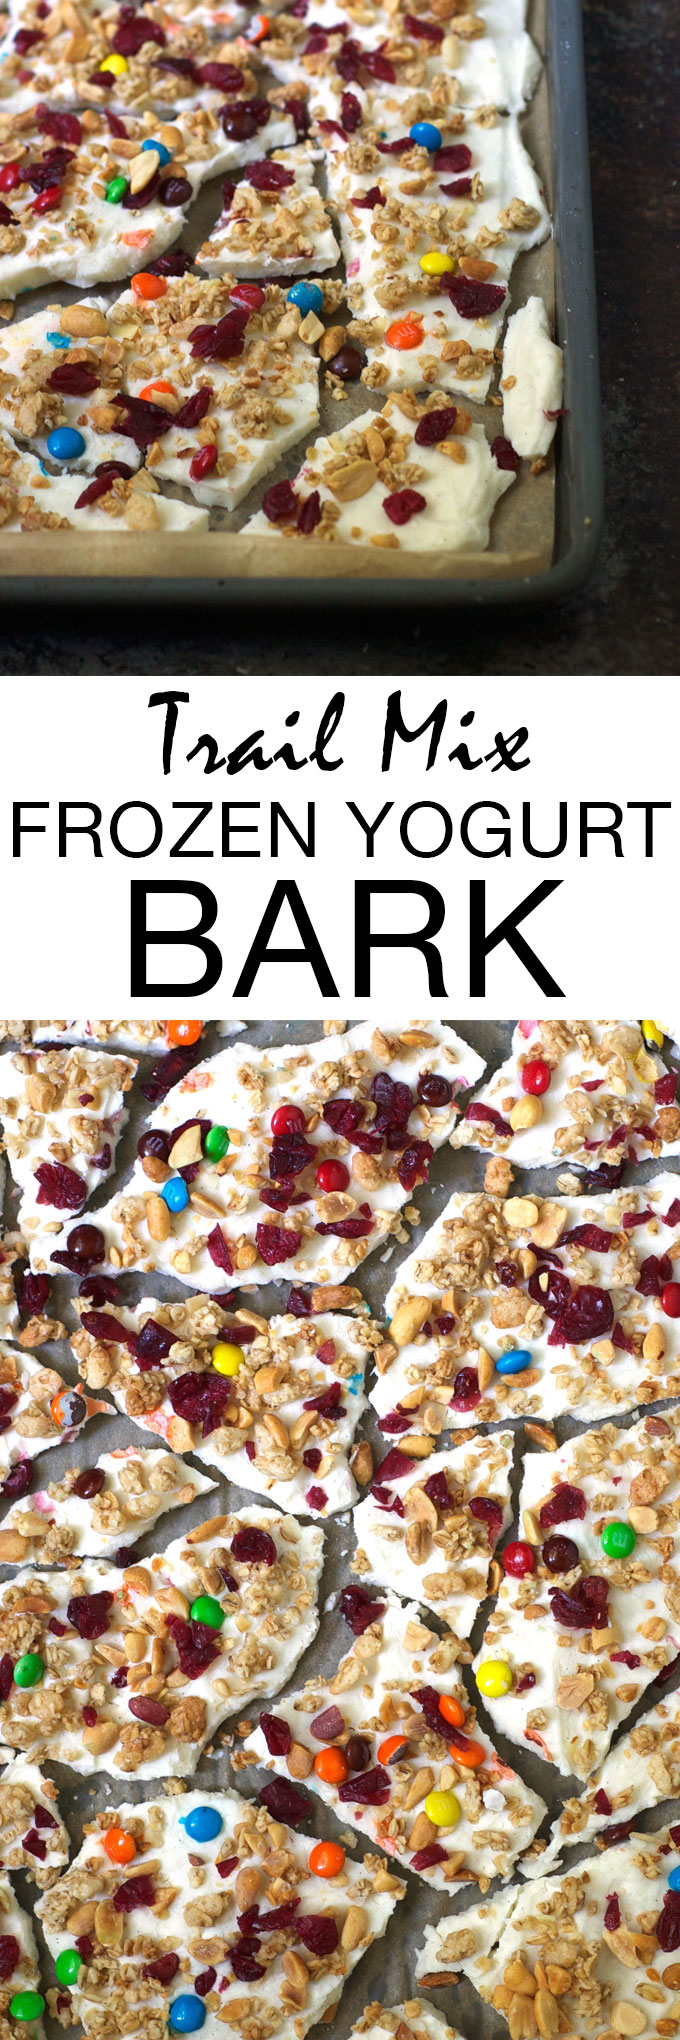 Trail Mix Frozen Yogurt Bark is the perfect healthy, whole food snack! Creamy Greek yogurt is swirled with honey and vanilla and sprinkled with granola, peanuts, dried cranberries, and M&Ms. Then just pop in the freezer for a couple of hours and enjoy!